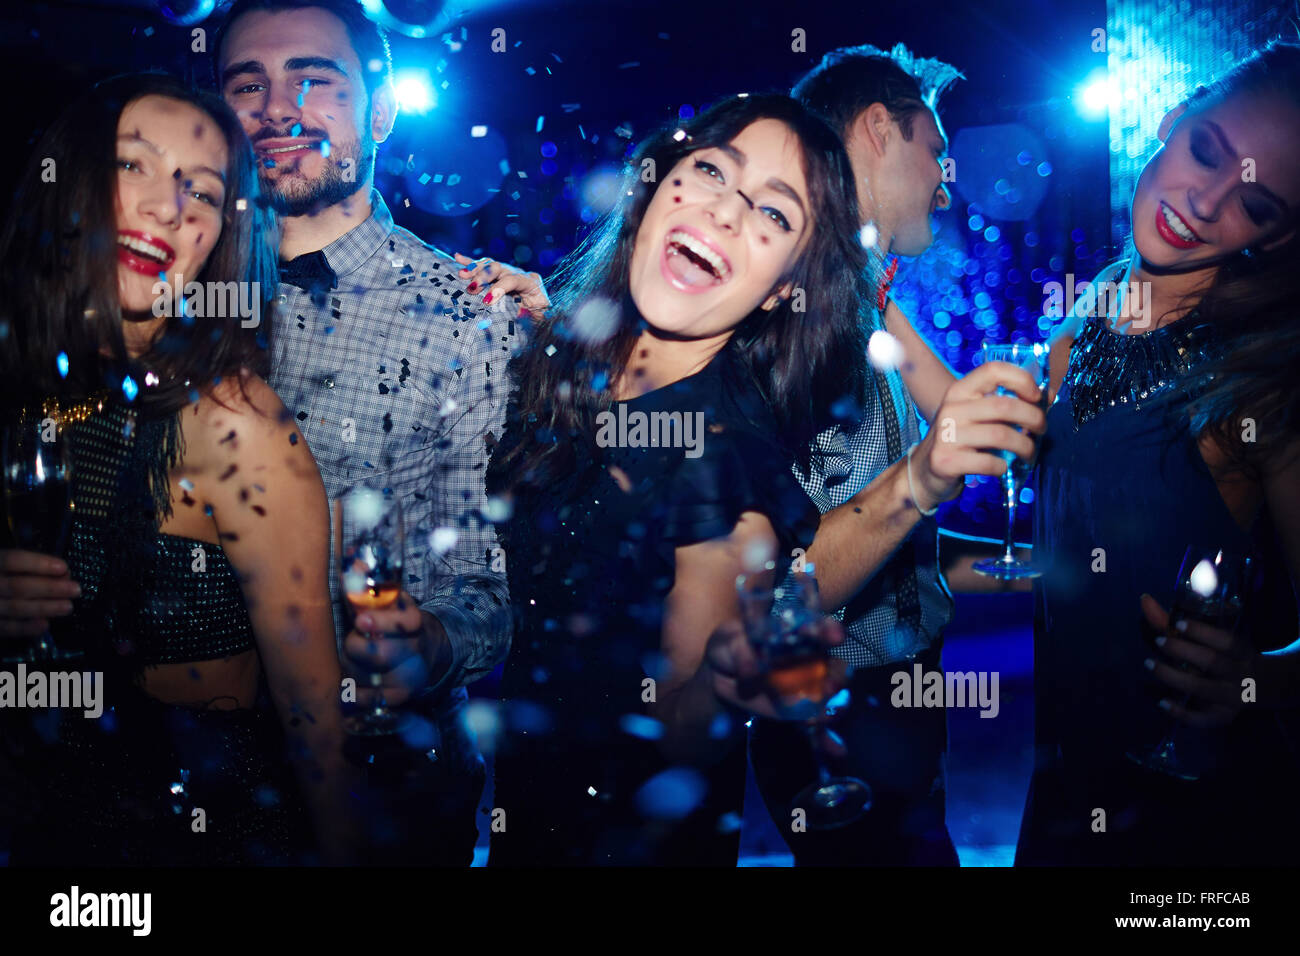 Dancing at party - Stock Image